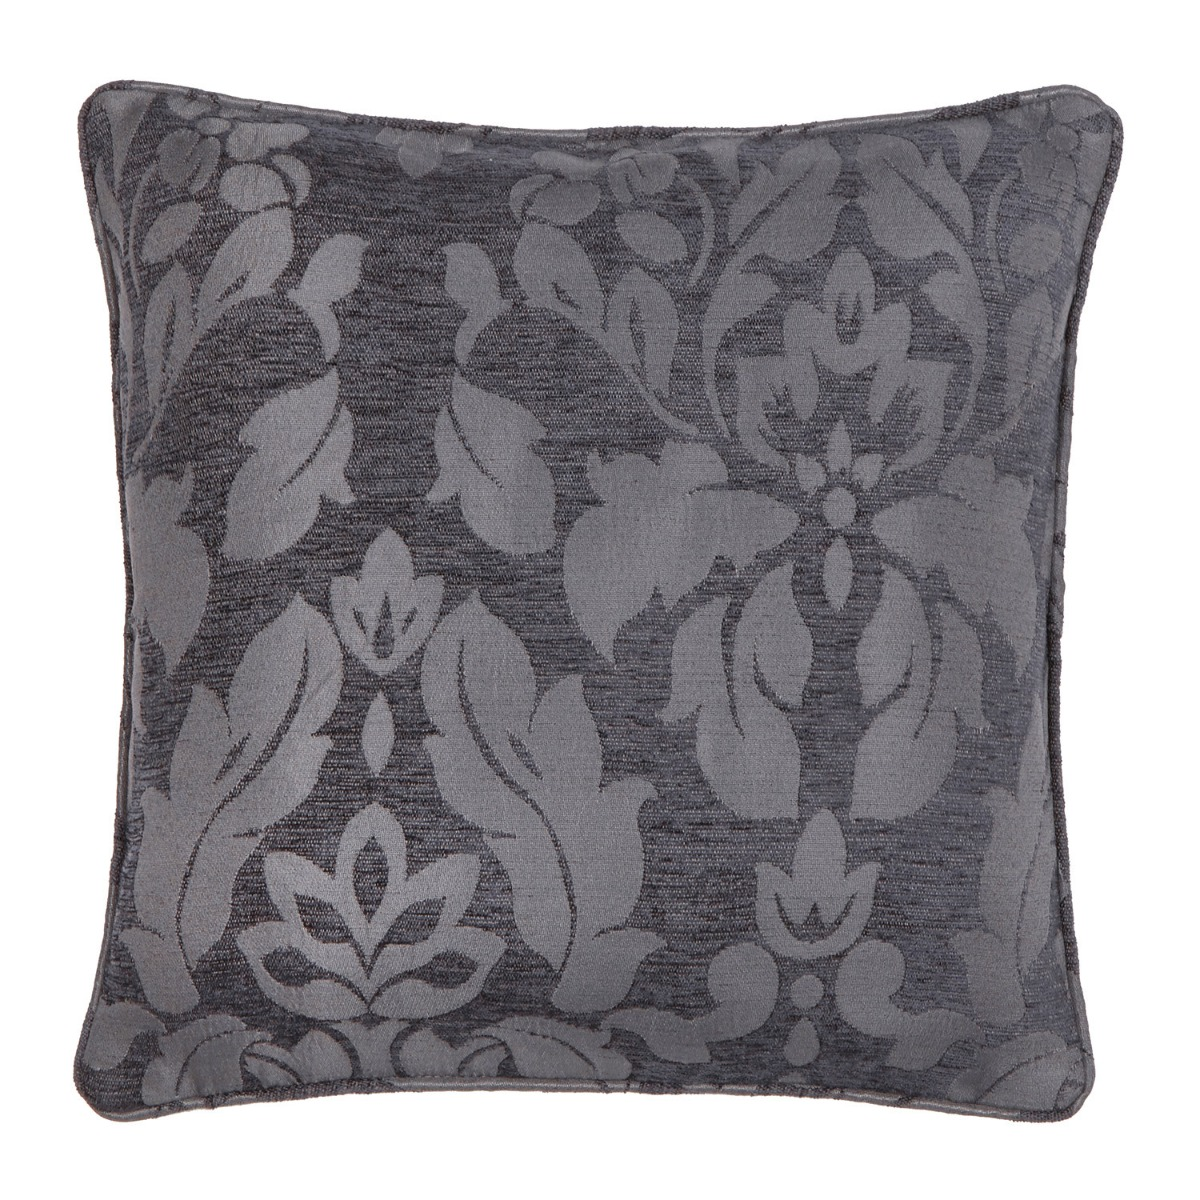 Baroque Charcoal Damask Filled Square Cushion